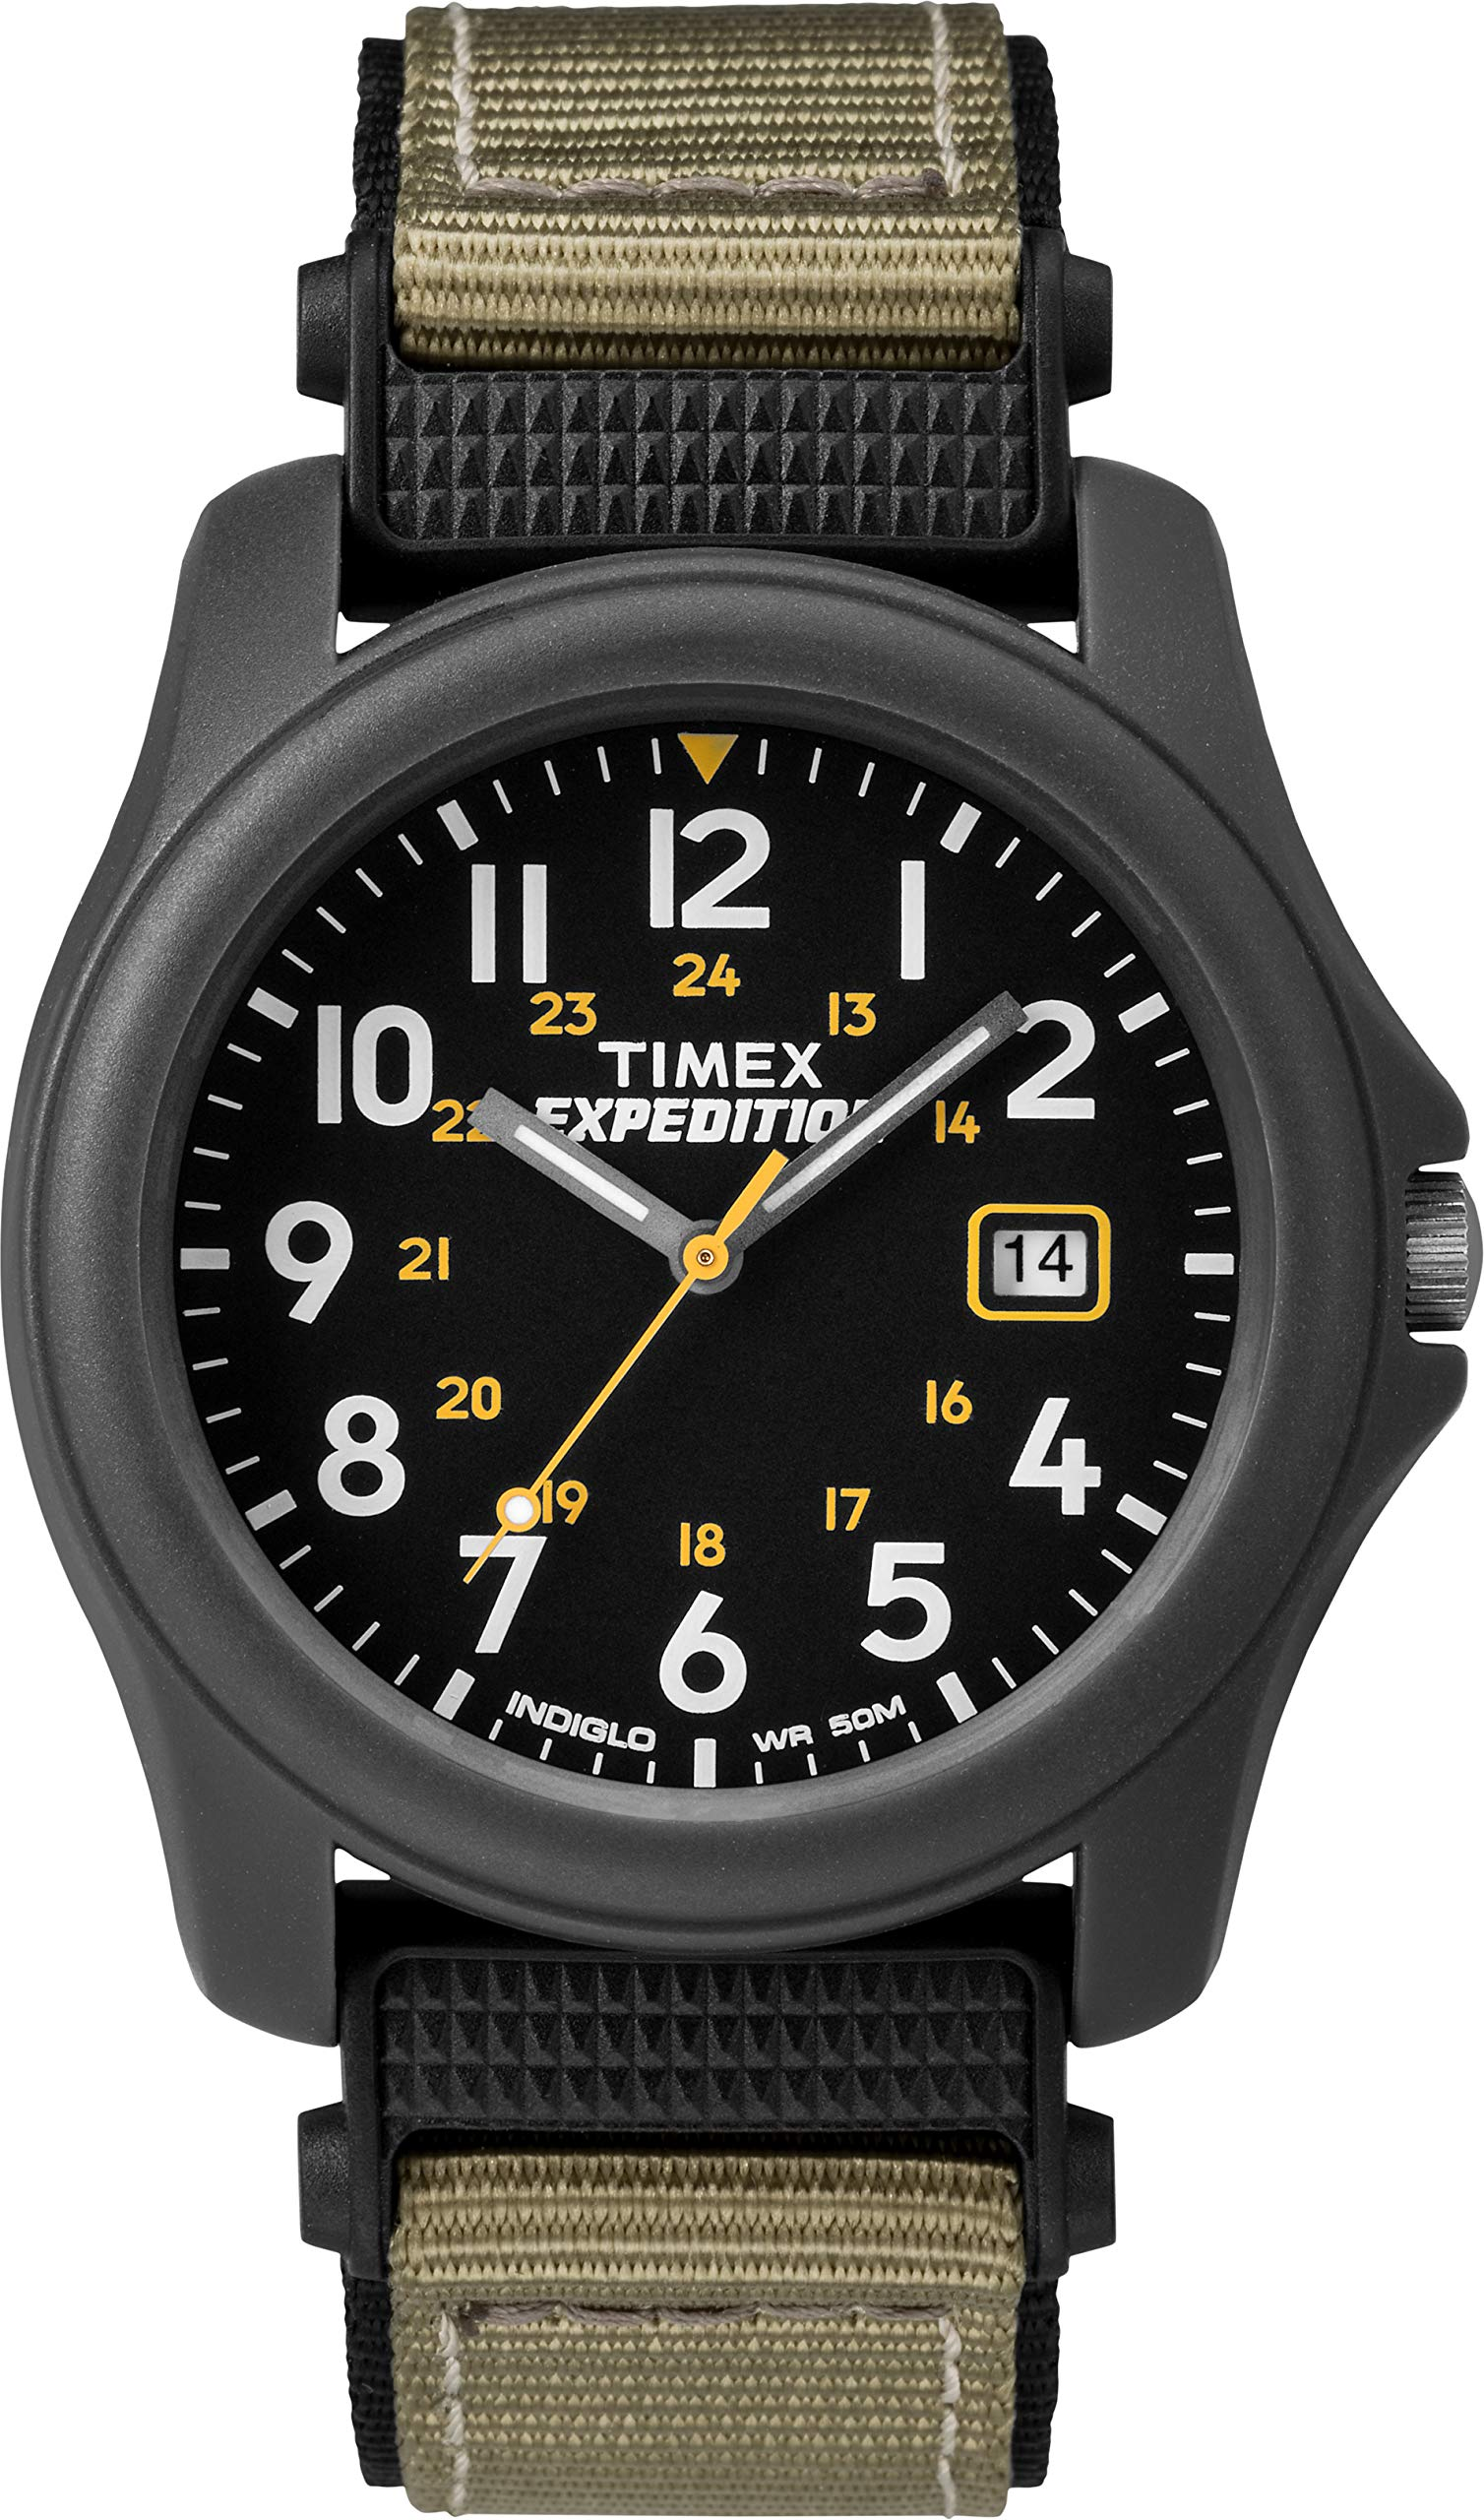 Unisex Quartz Camper Watch with Dial Analogue Digital Display and Nylon Strap